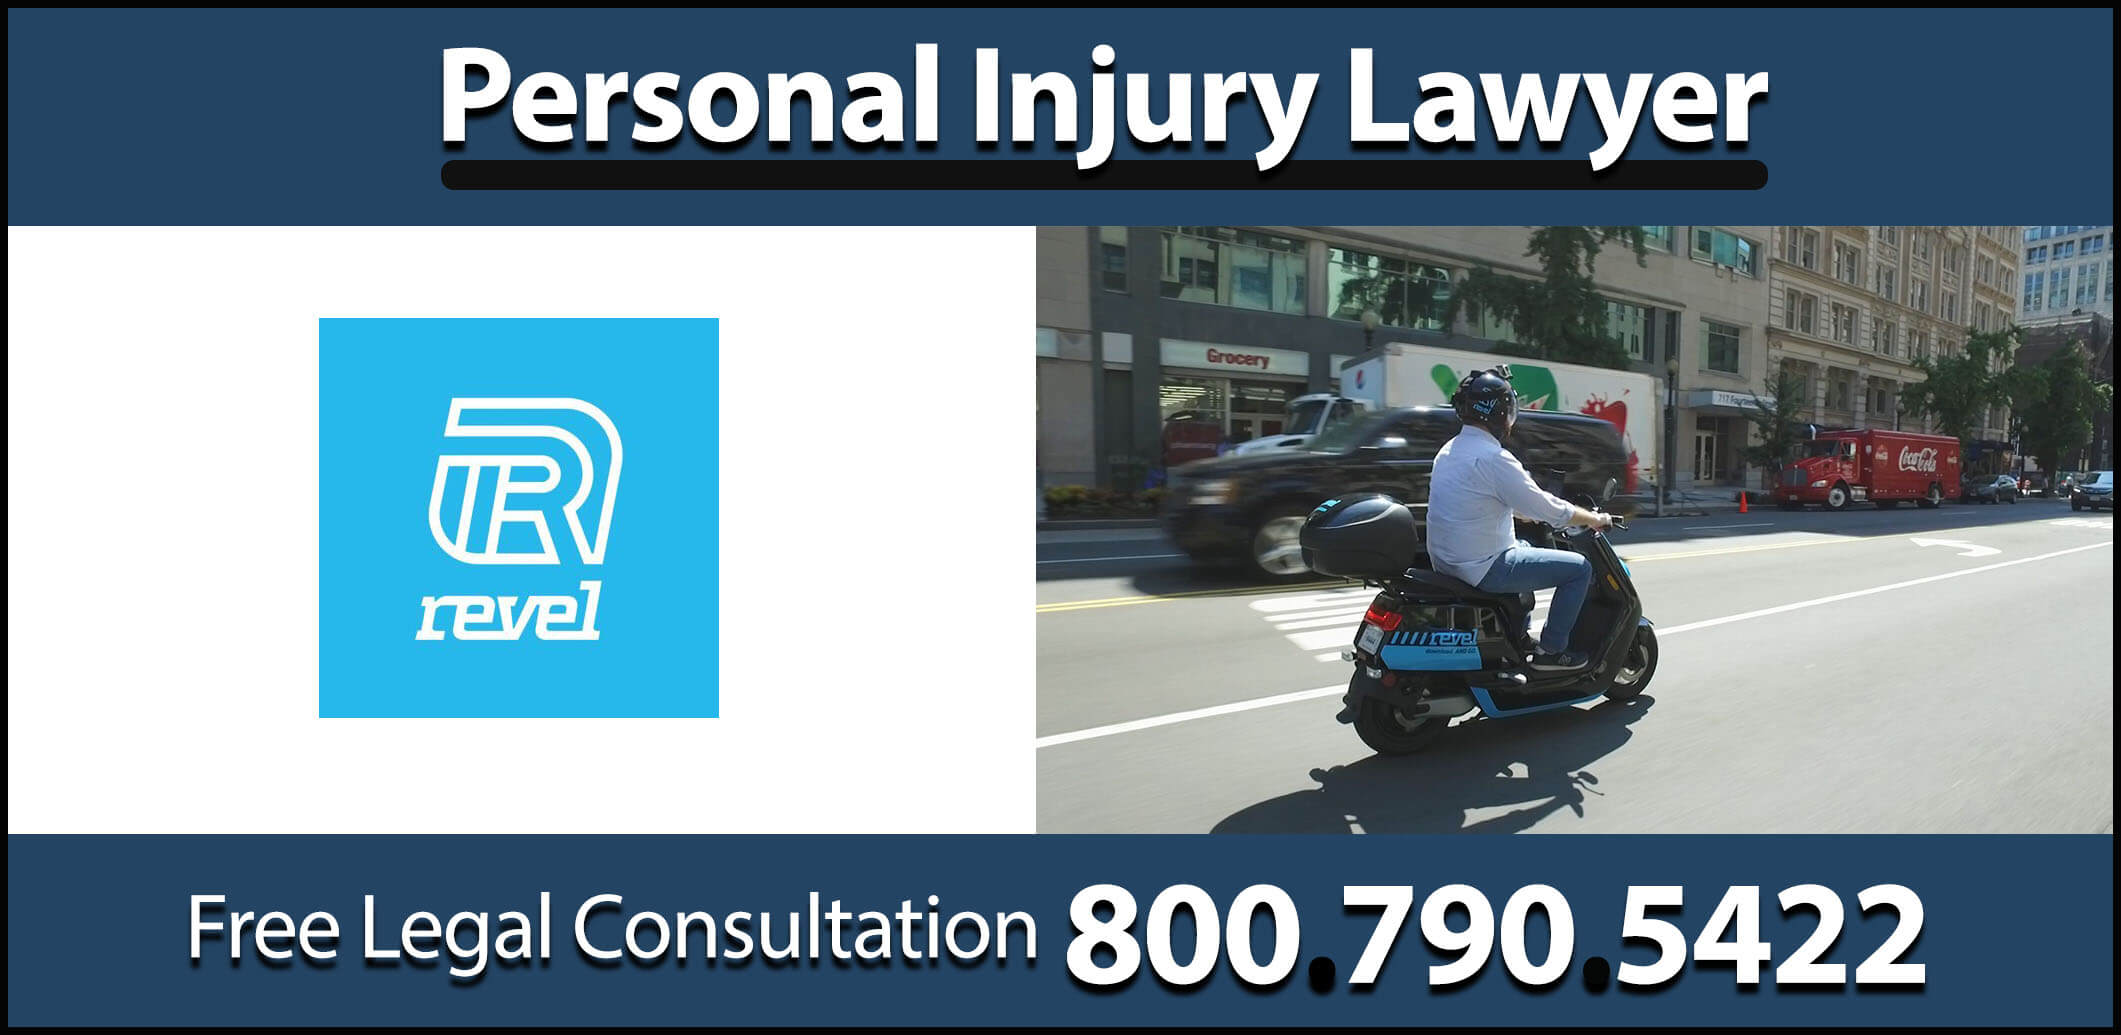 revel moped accident personal injury lawyer attorney sprain concussion fracture damage compensation medical expenses